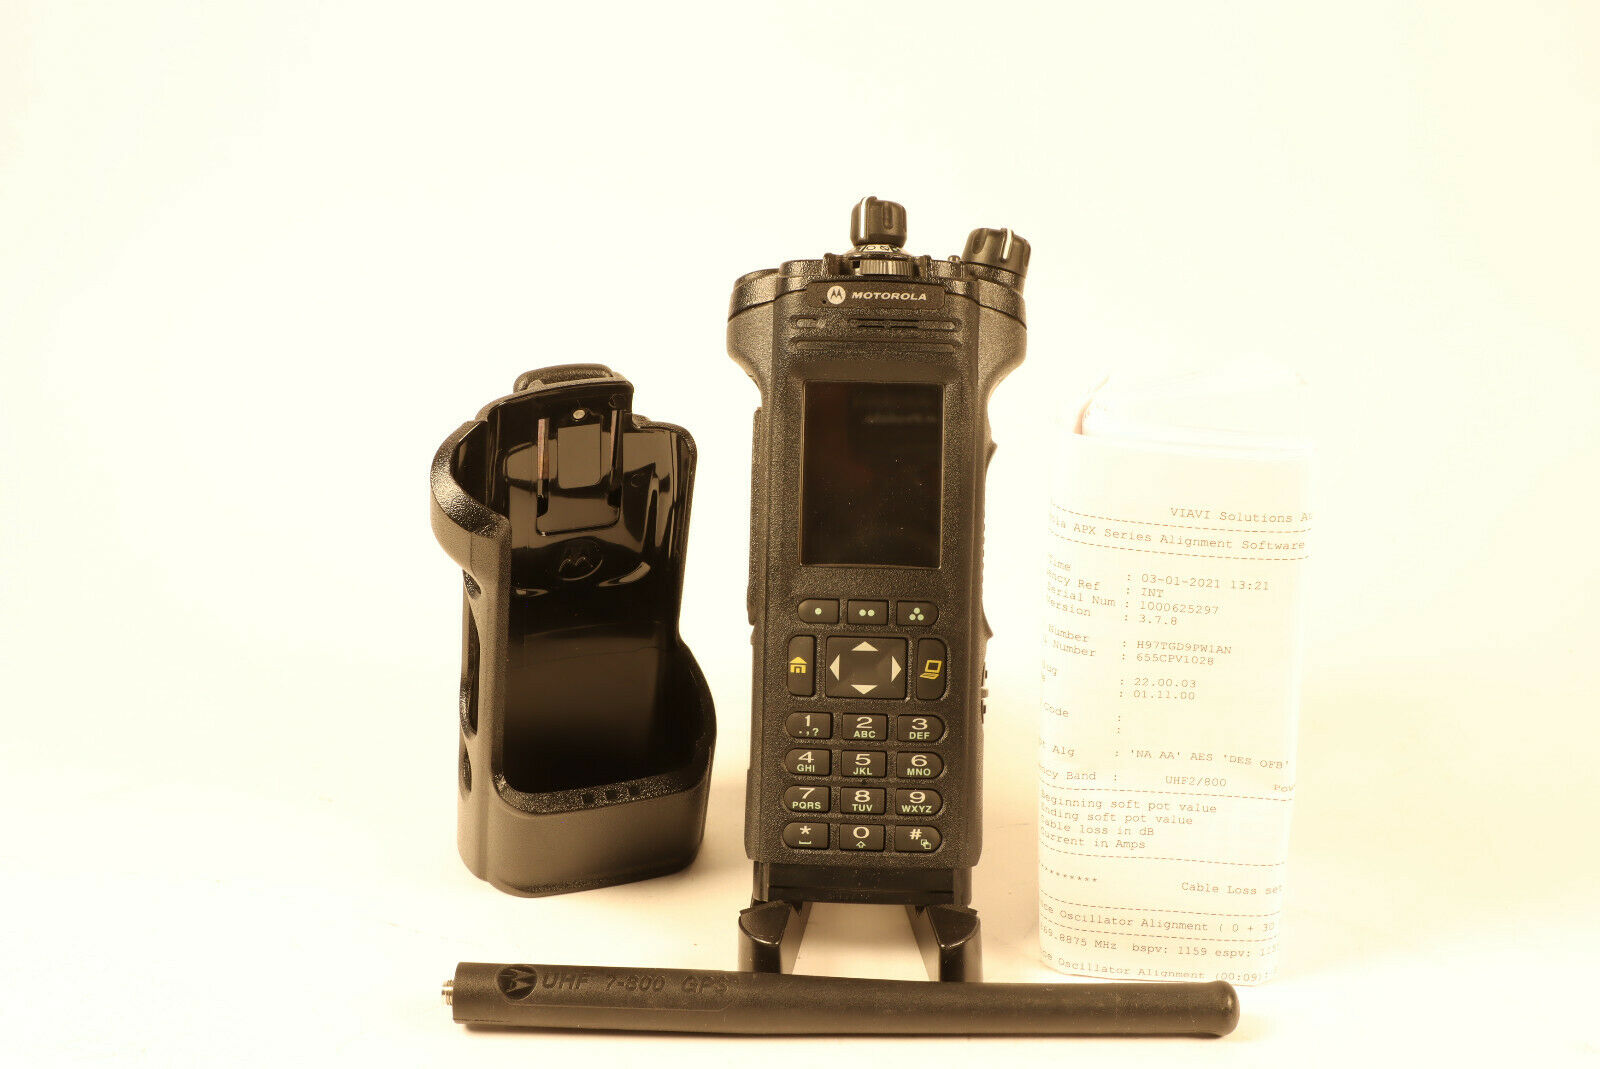 Motorola APX7000  700-800 / UHF2(5) Algo's w/ antenna Holster *No Tag. Available Now for 2200.00